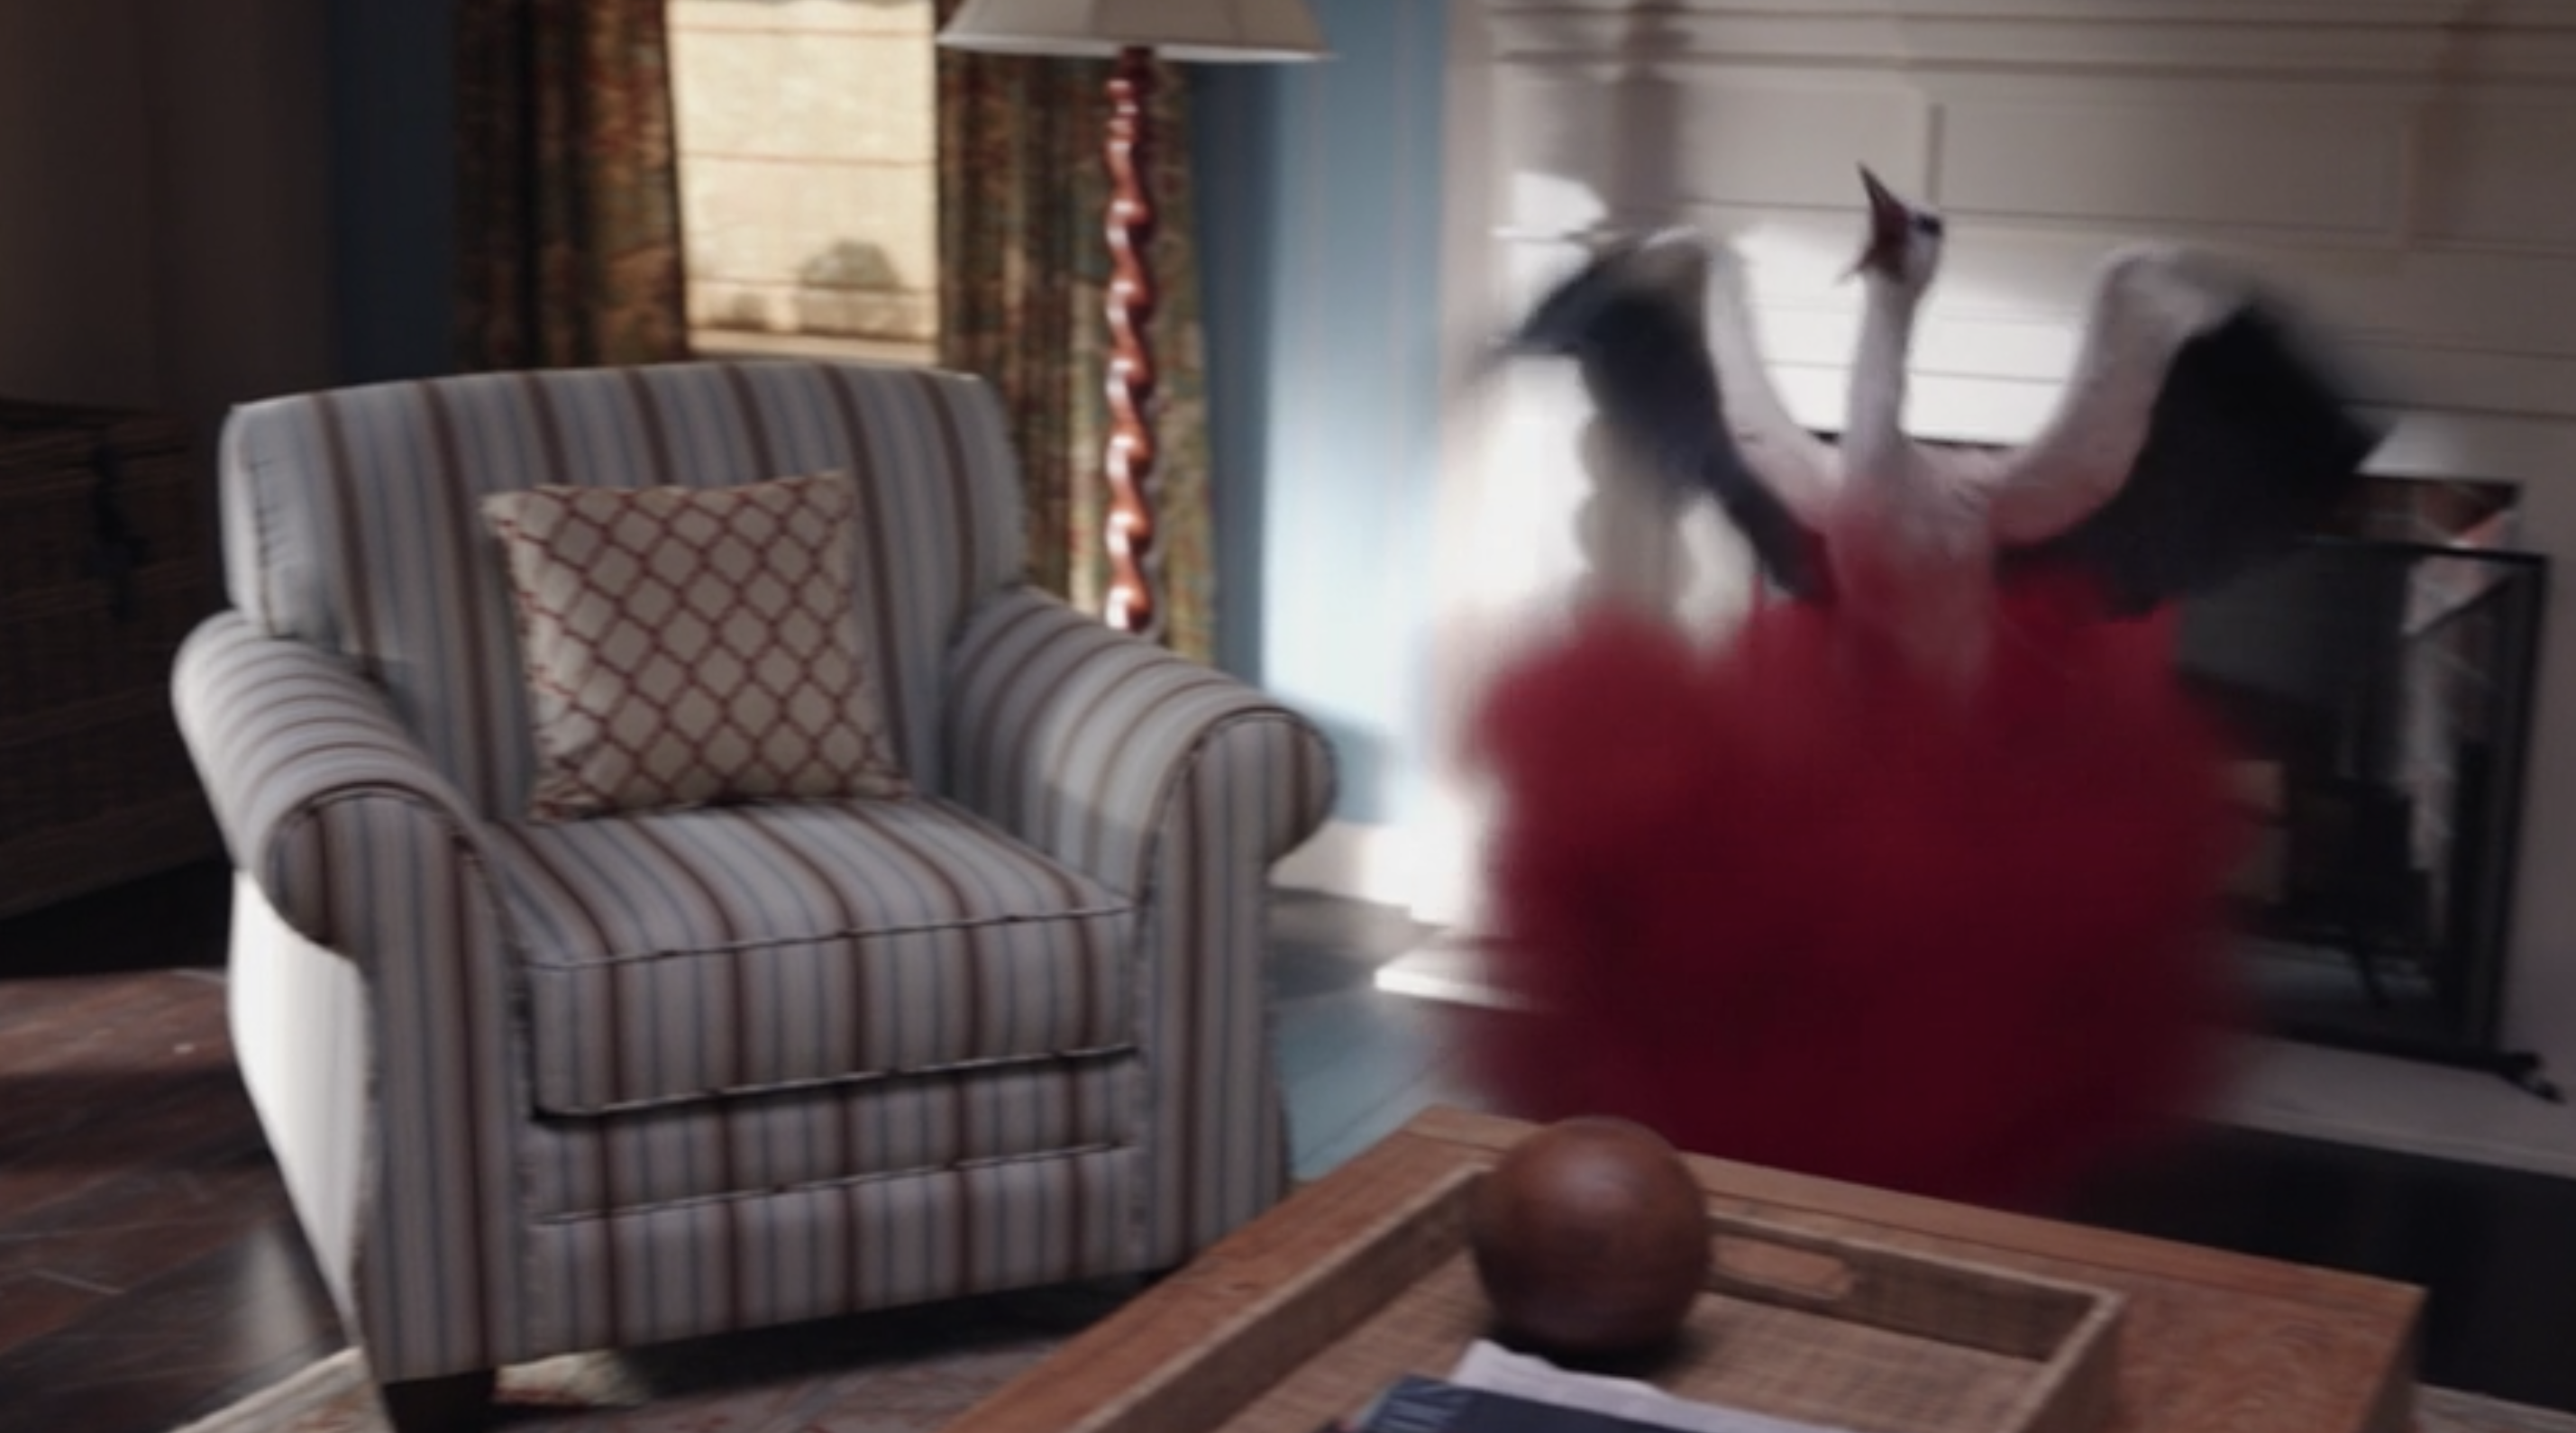 A stork appearing inside a red cloud in Wanda's living room